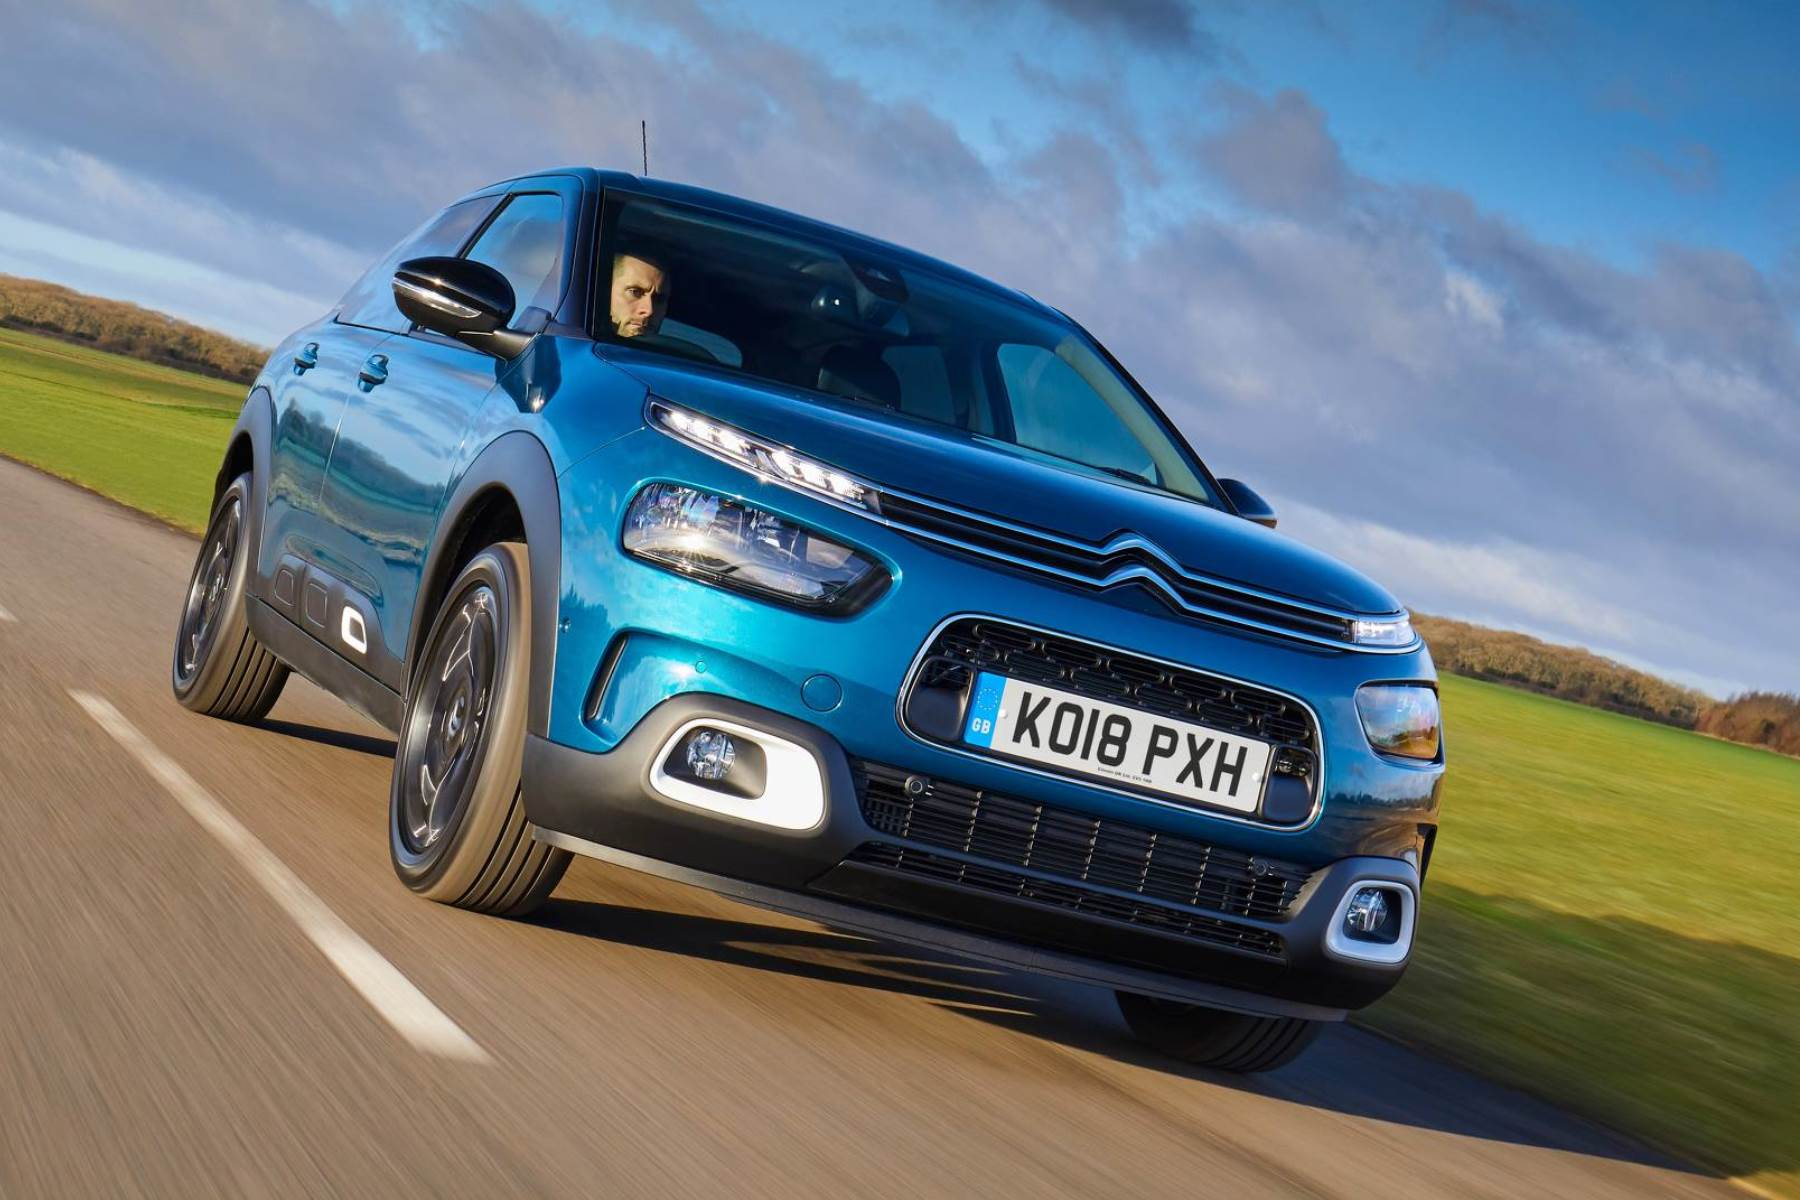 2018 citroen c4 cactus review automotive blog. Black Bedroom Furniture Sets. Home Design Ideas